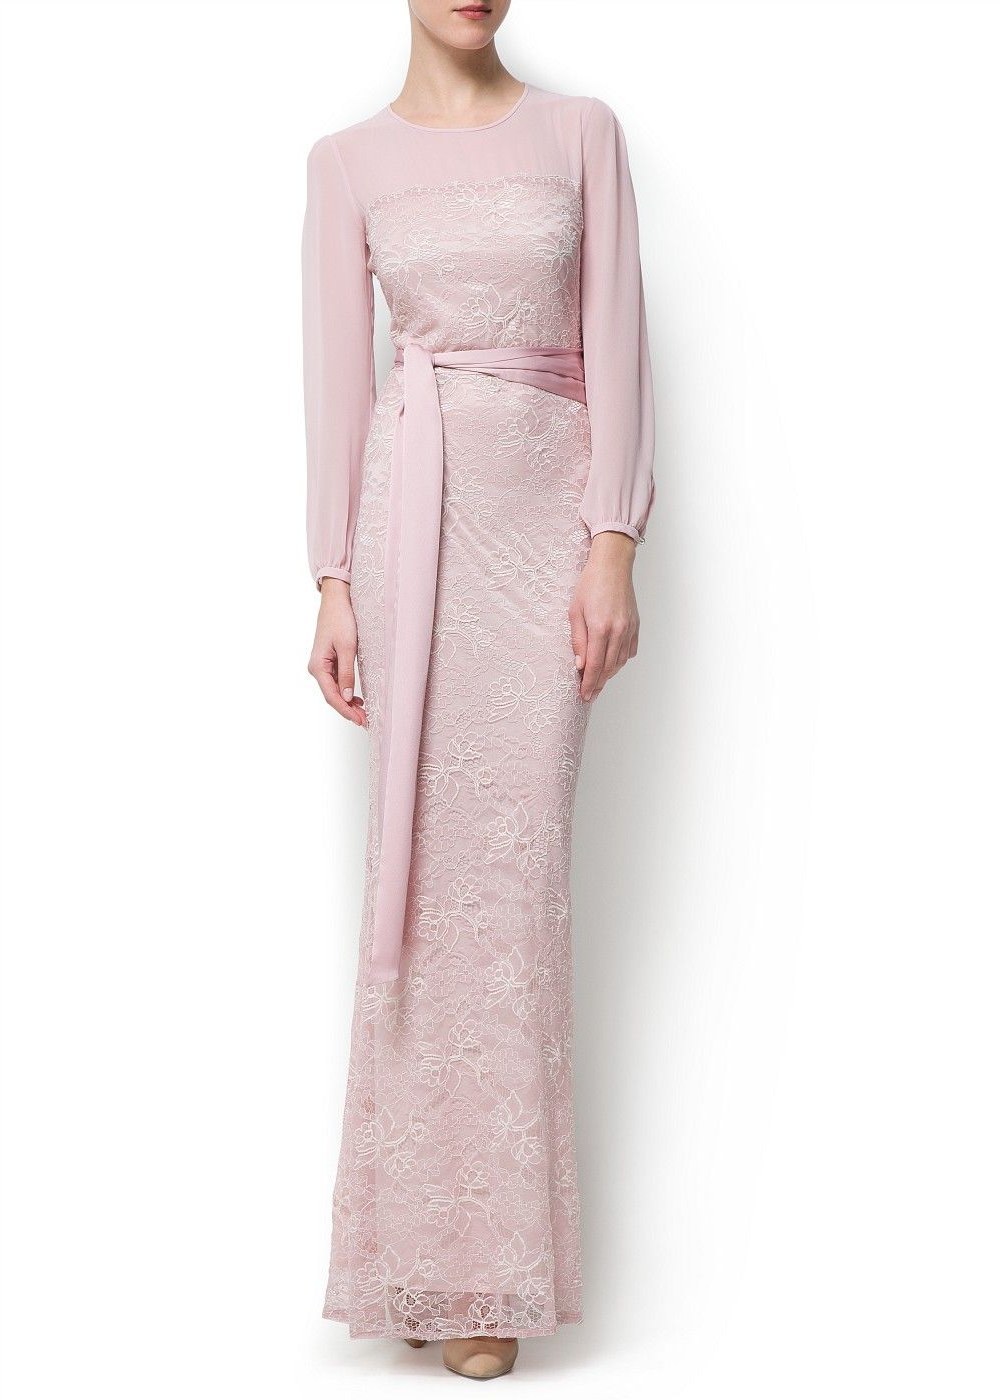 Inspirasi Ootd Hijab Bridesmaid Whdr Lace Gown Woman In 2019